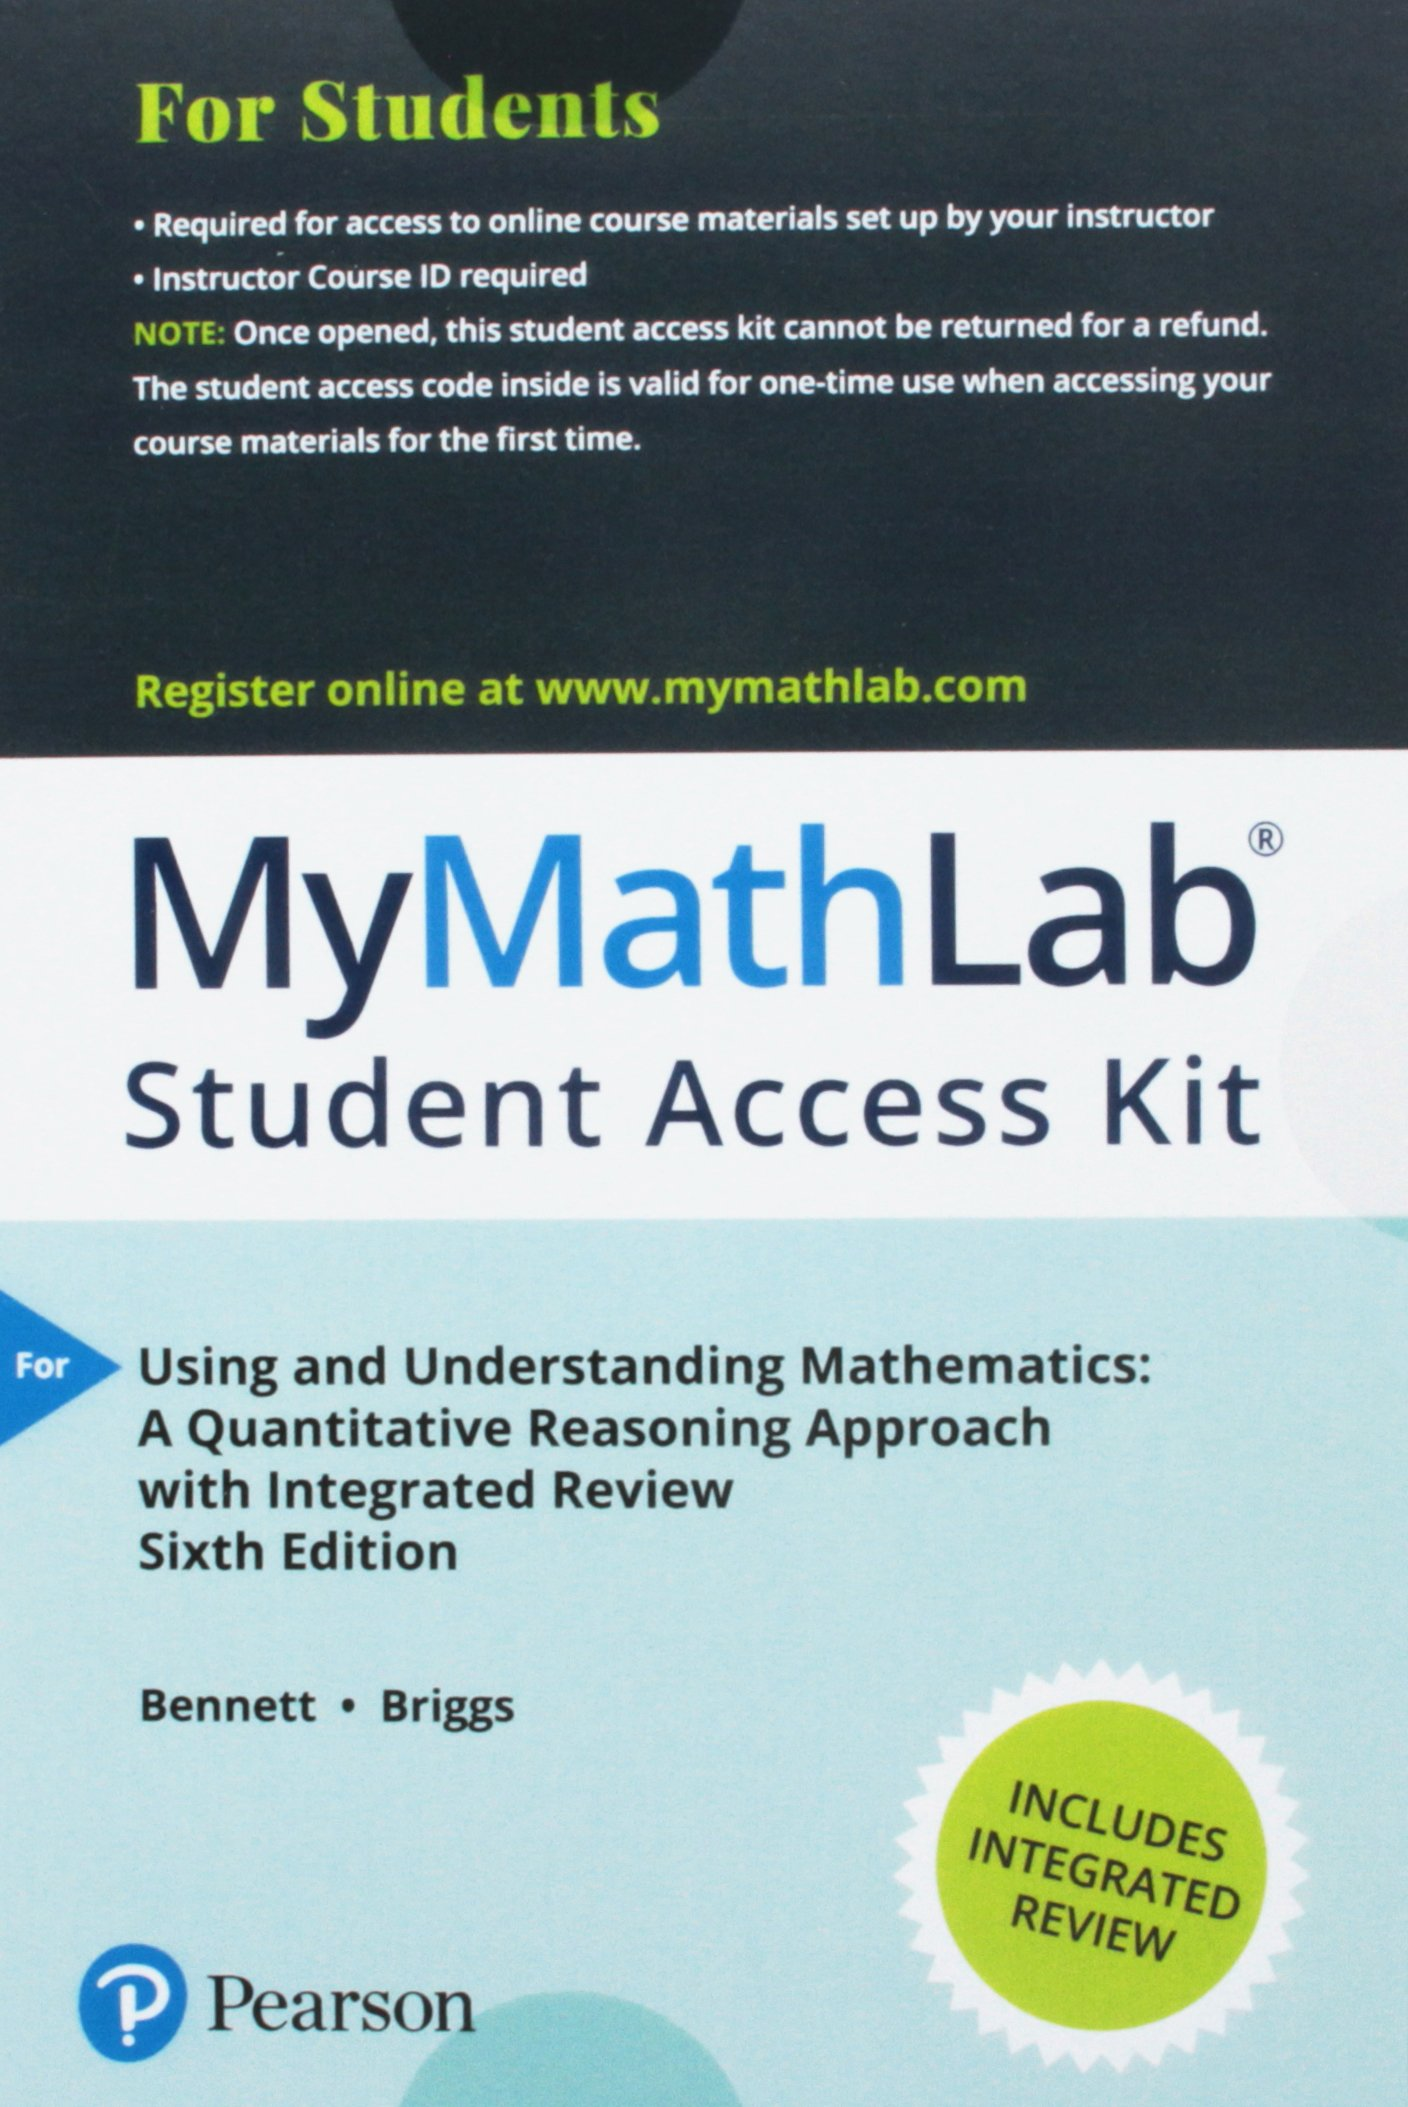 Using and Understanding Mathematics with Integrated Review and ...